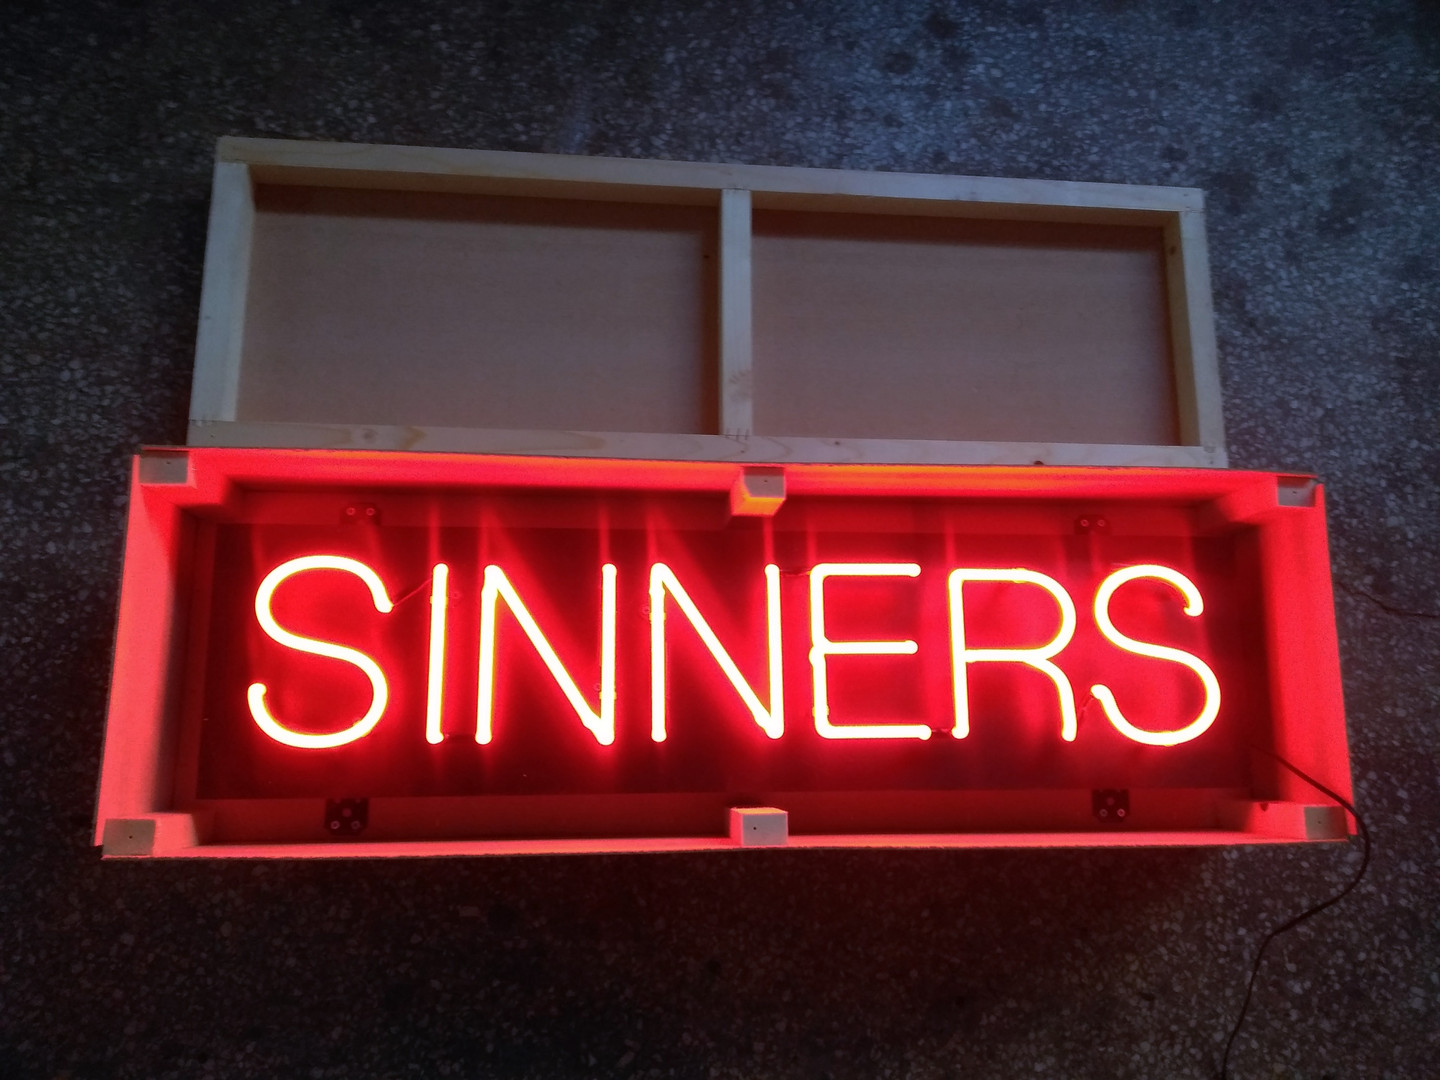 Sinners neon lighting sign in wooden box